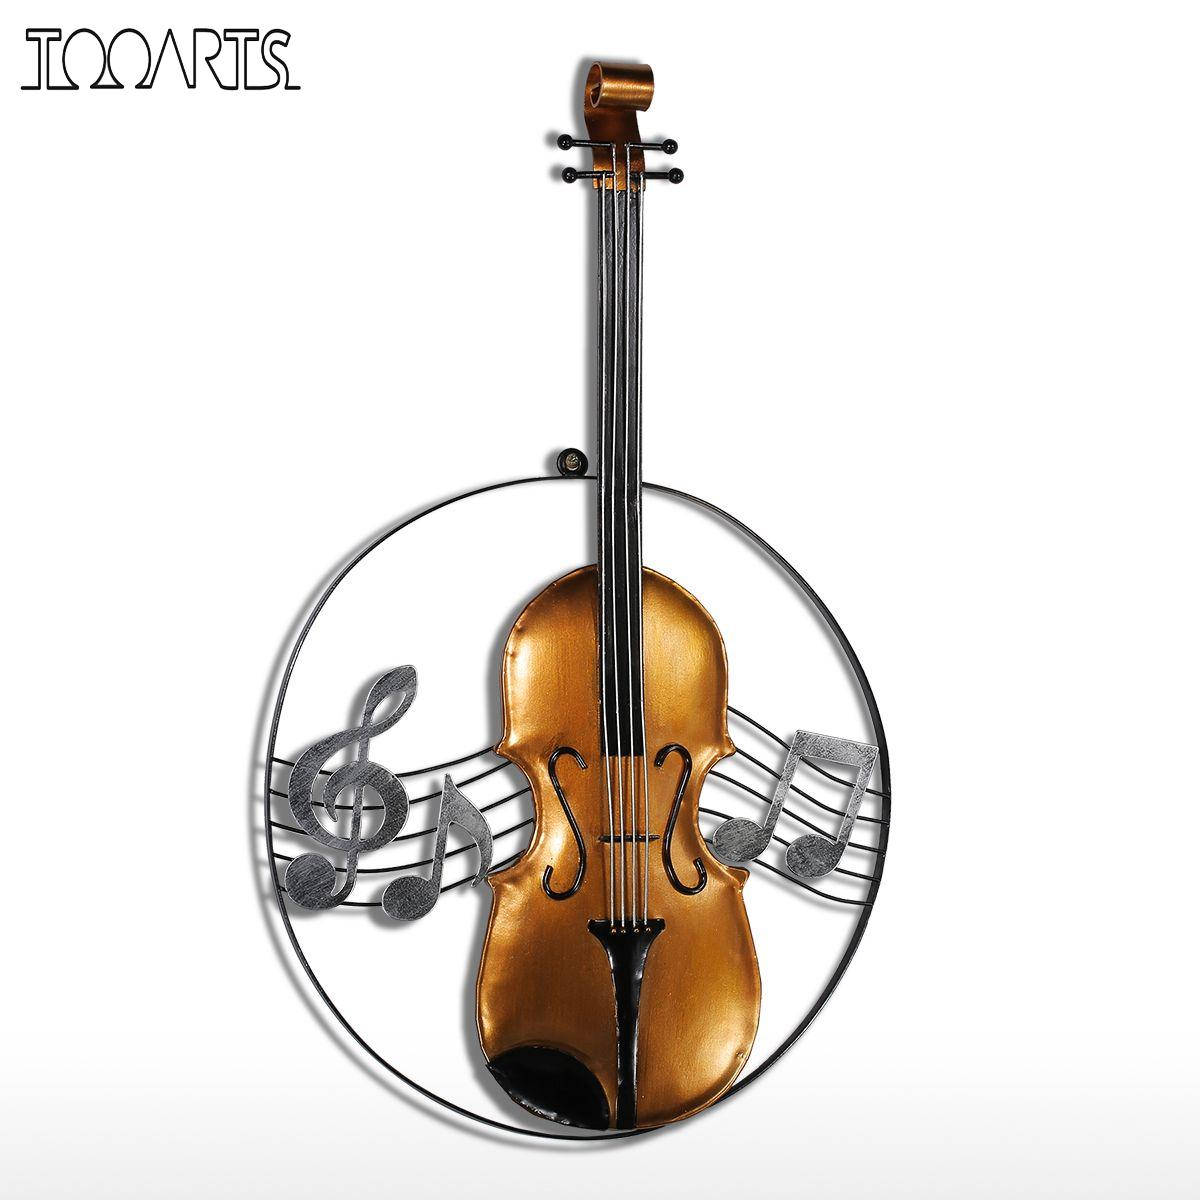 Violin christmas ornaments - Tooarts Violin Figurine Ornament Modern Metal Home Decor Themed Wall Hangings Decor Music Theme Instrument Craft